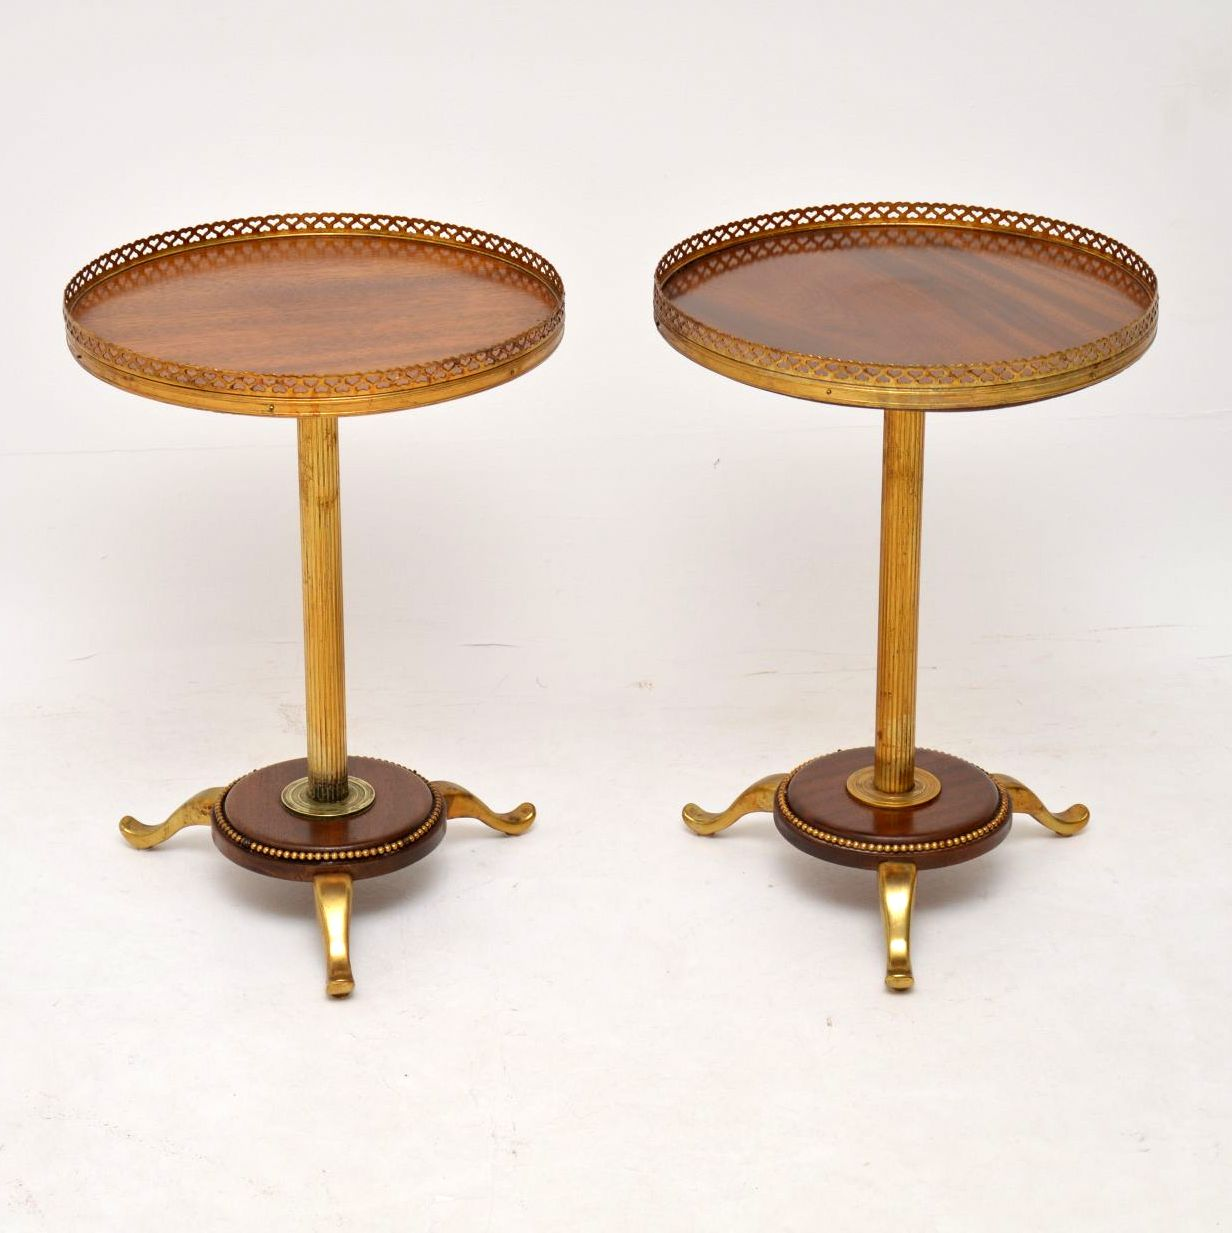 Pair of Antique Mahogany & Brass Wine Tables